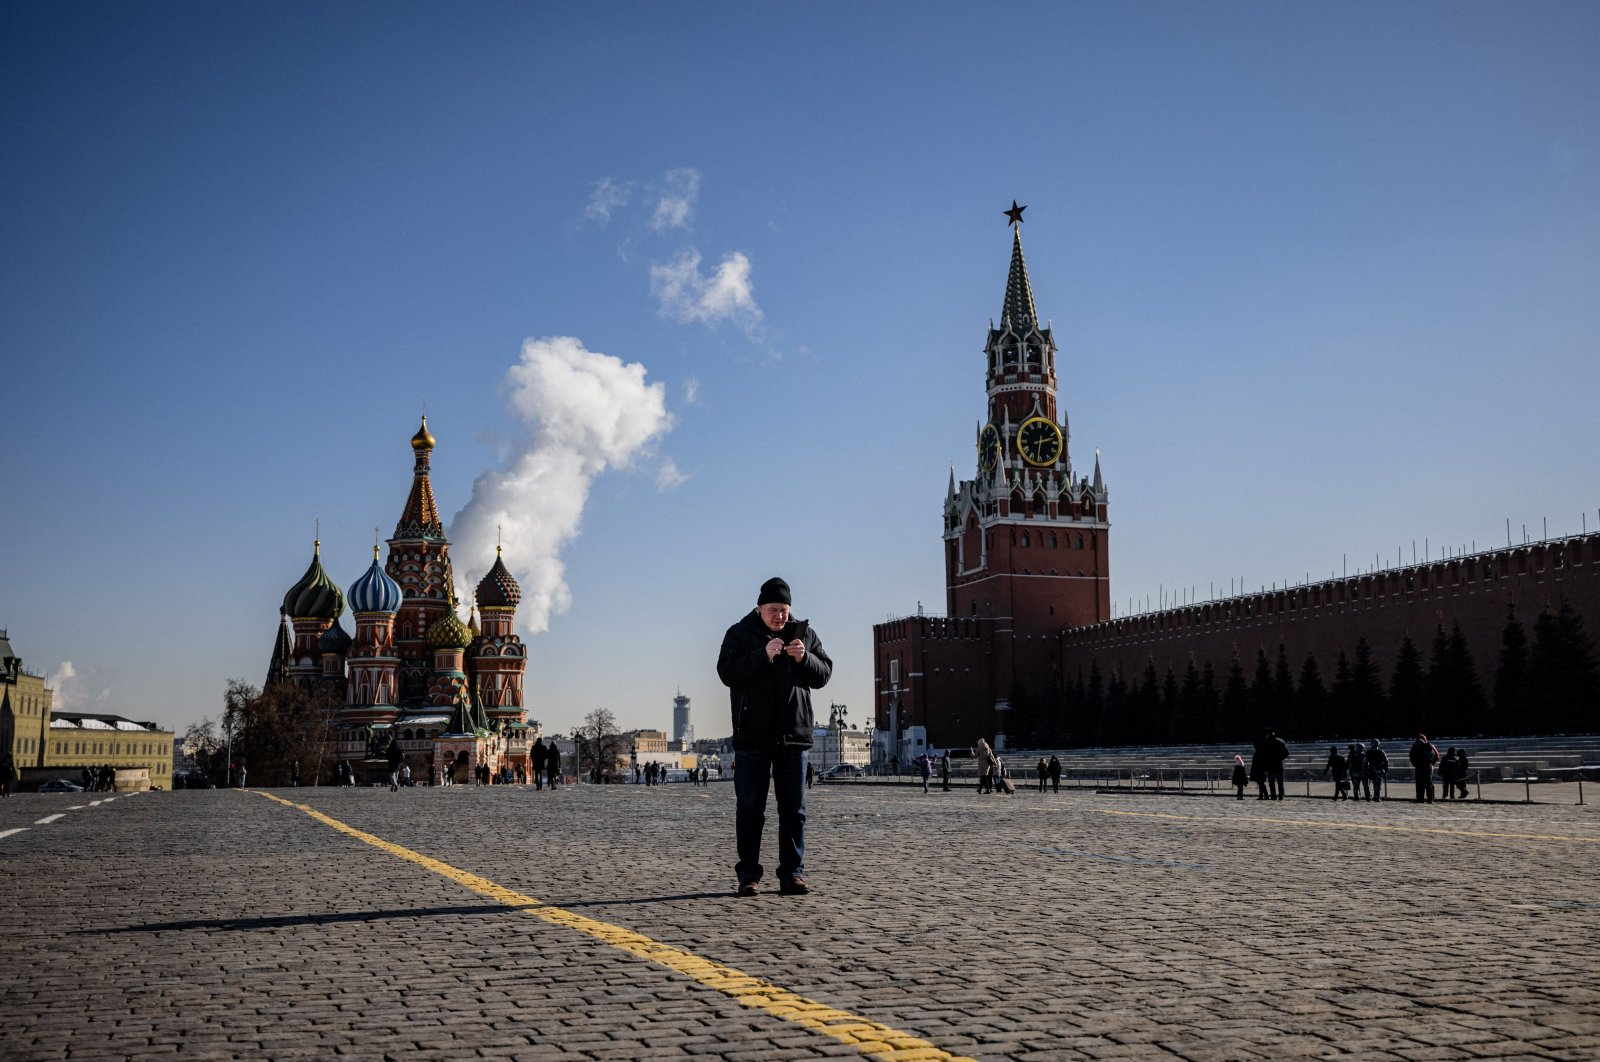 A man uses his mobile phone on Red Square in downtown Moscow, Russia, March 10, 2021. (AFP Photo)